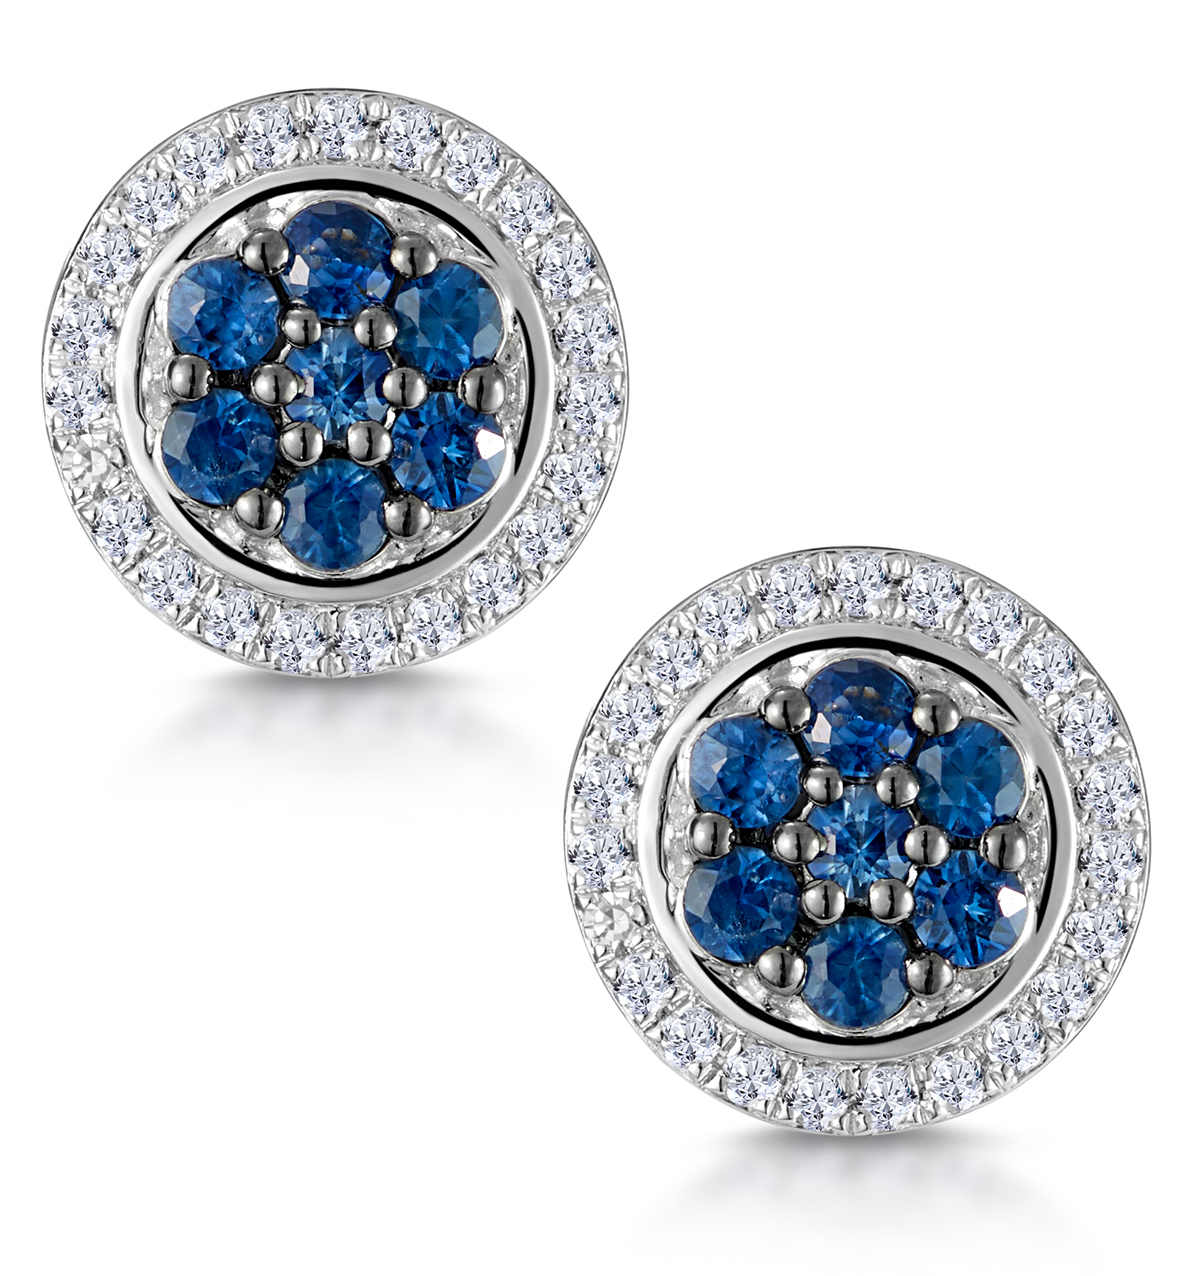 0.35CT SAPPHIRE AND DIAMOND STELLATO EARRINGS IN 9K WHITE GOLD